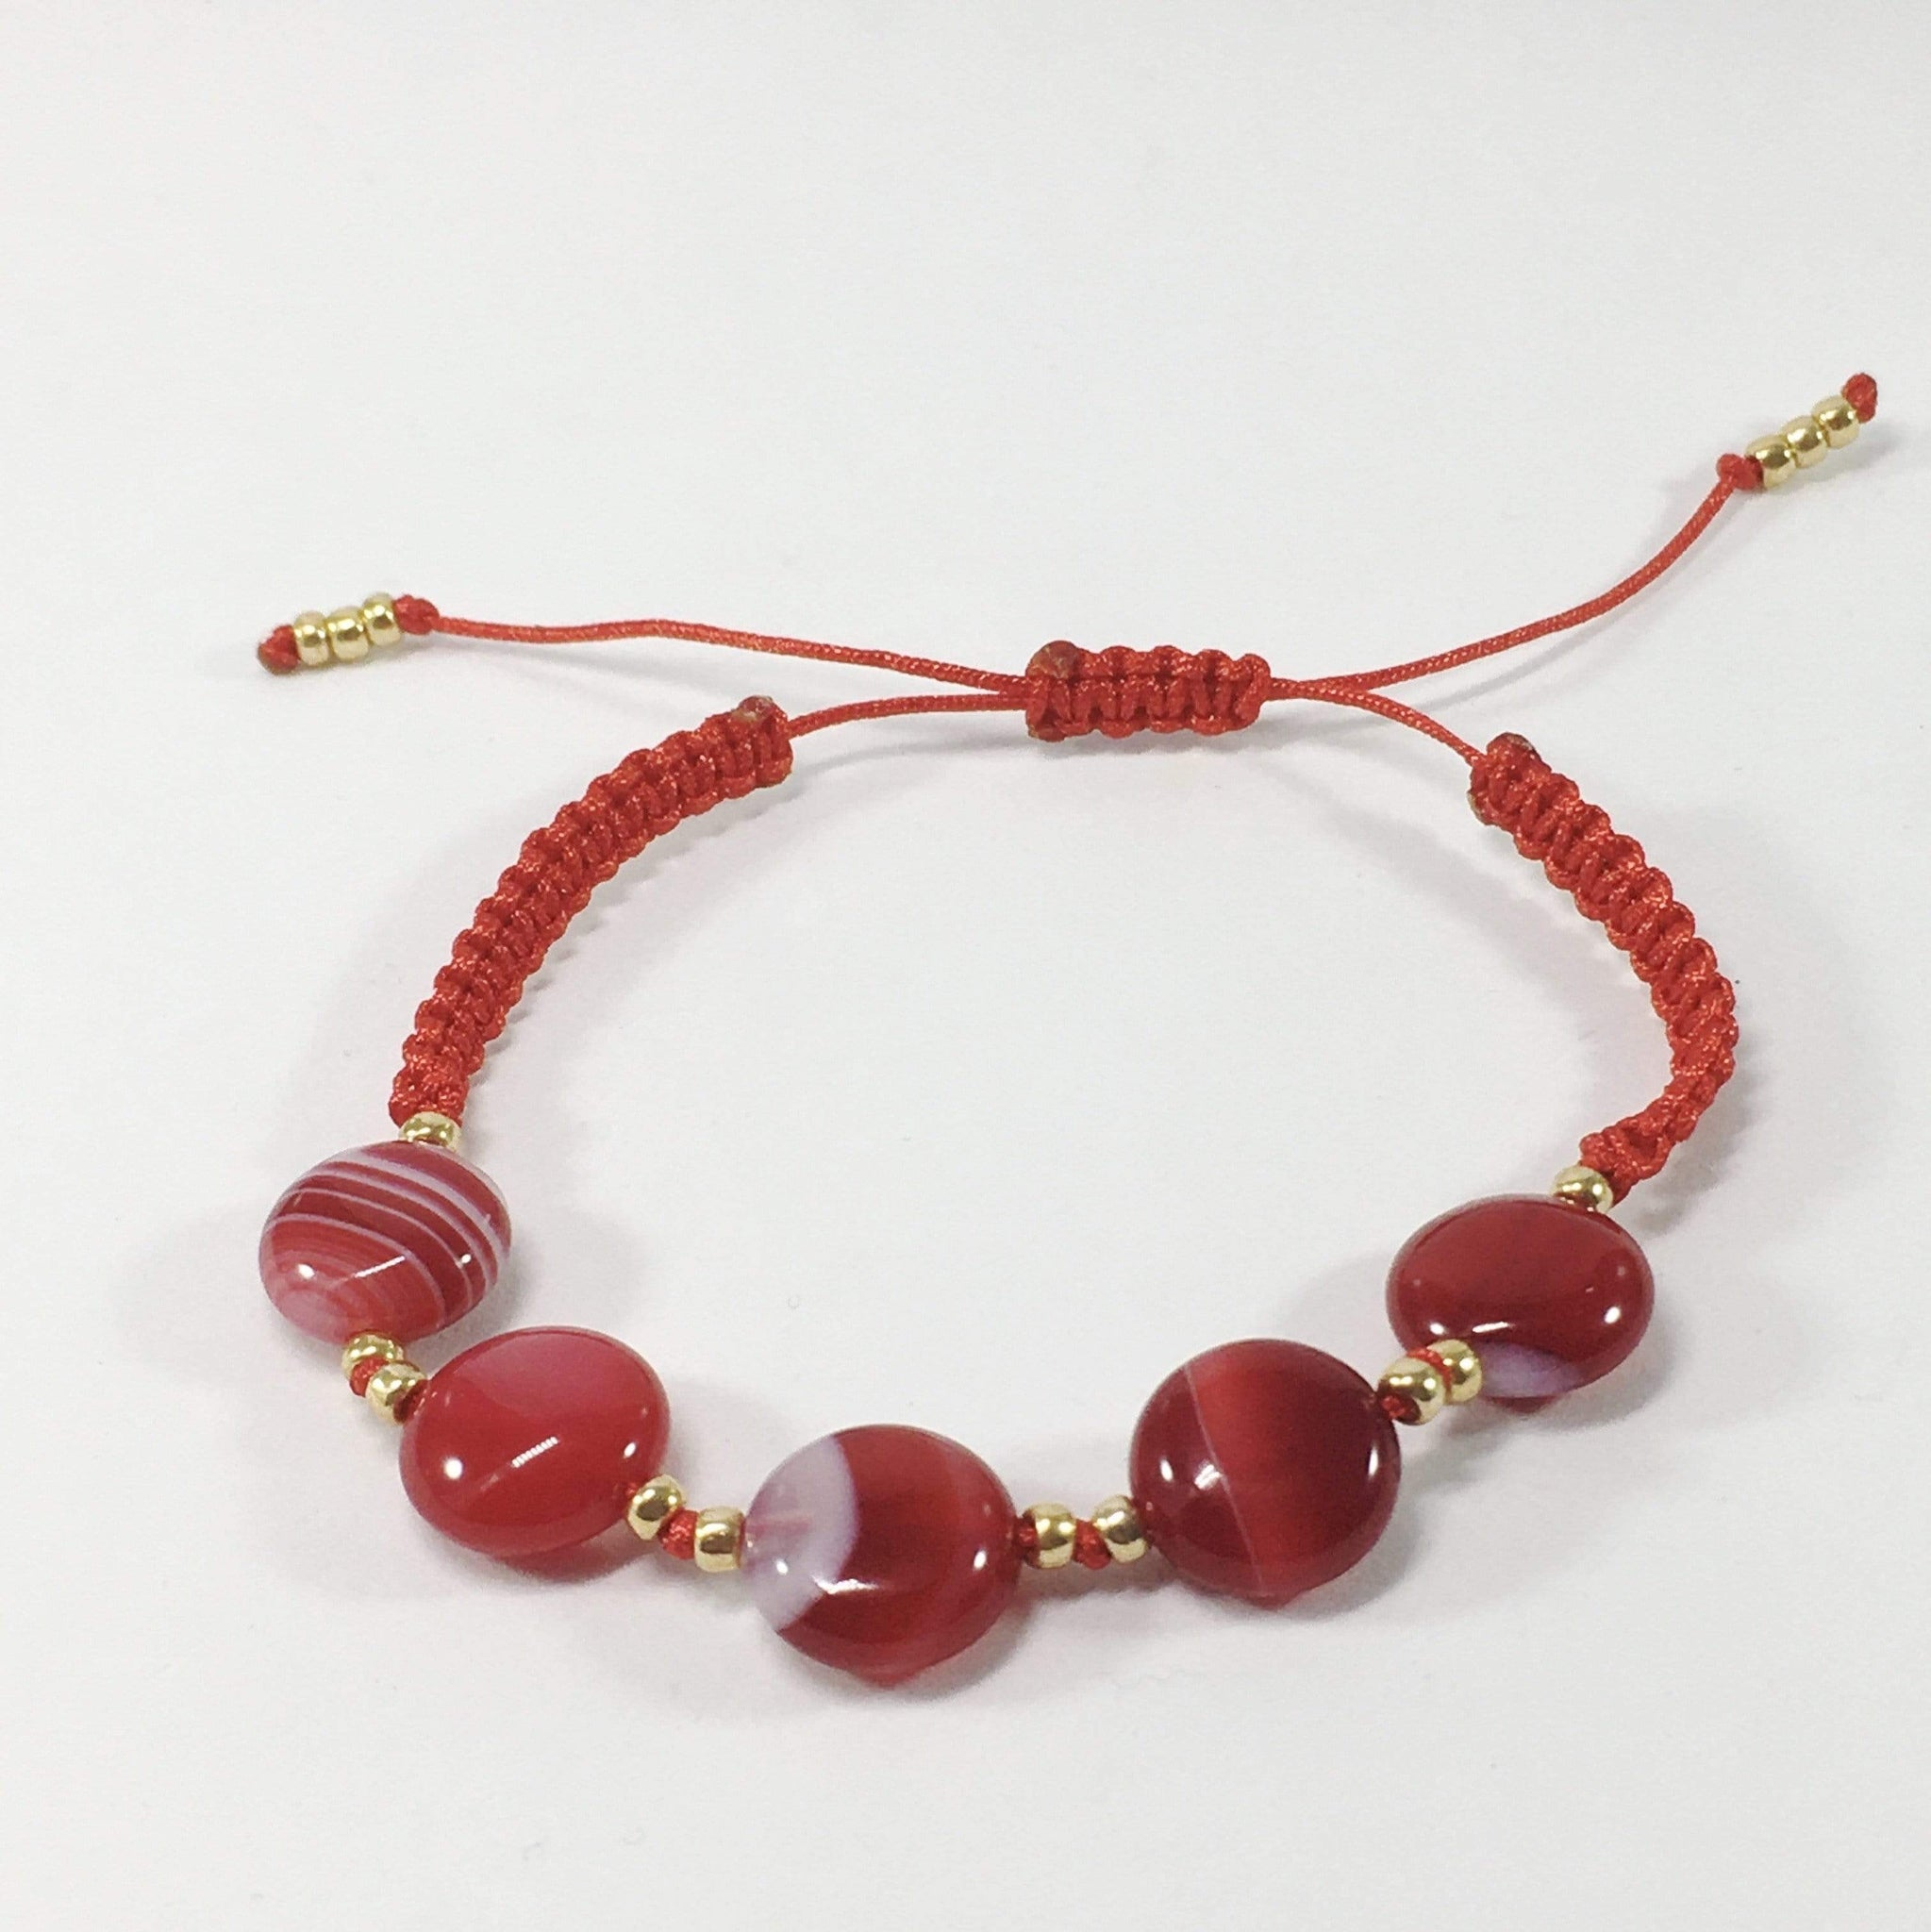 Coloured Adjustable Handmade Agate Gemstone Braclet Red